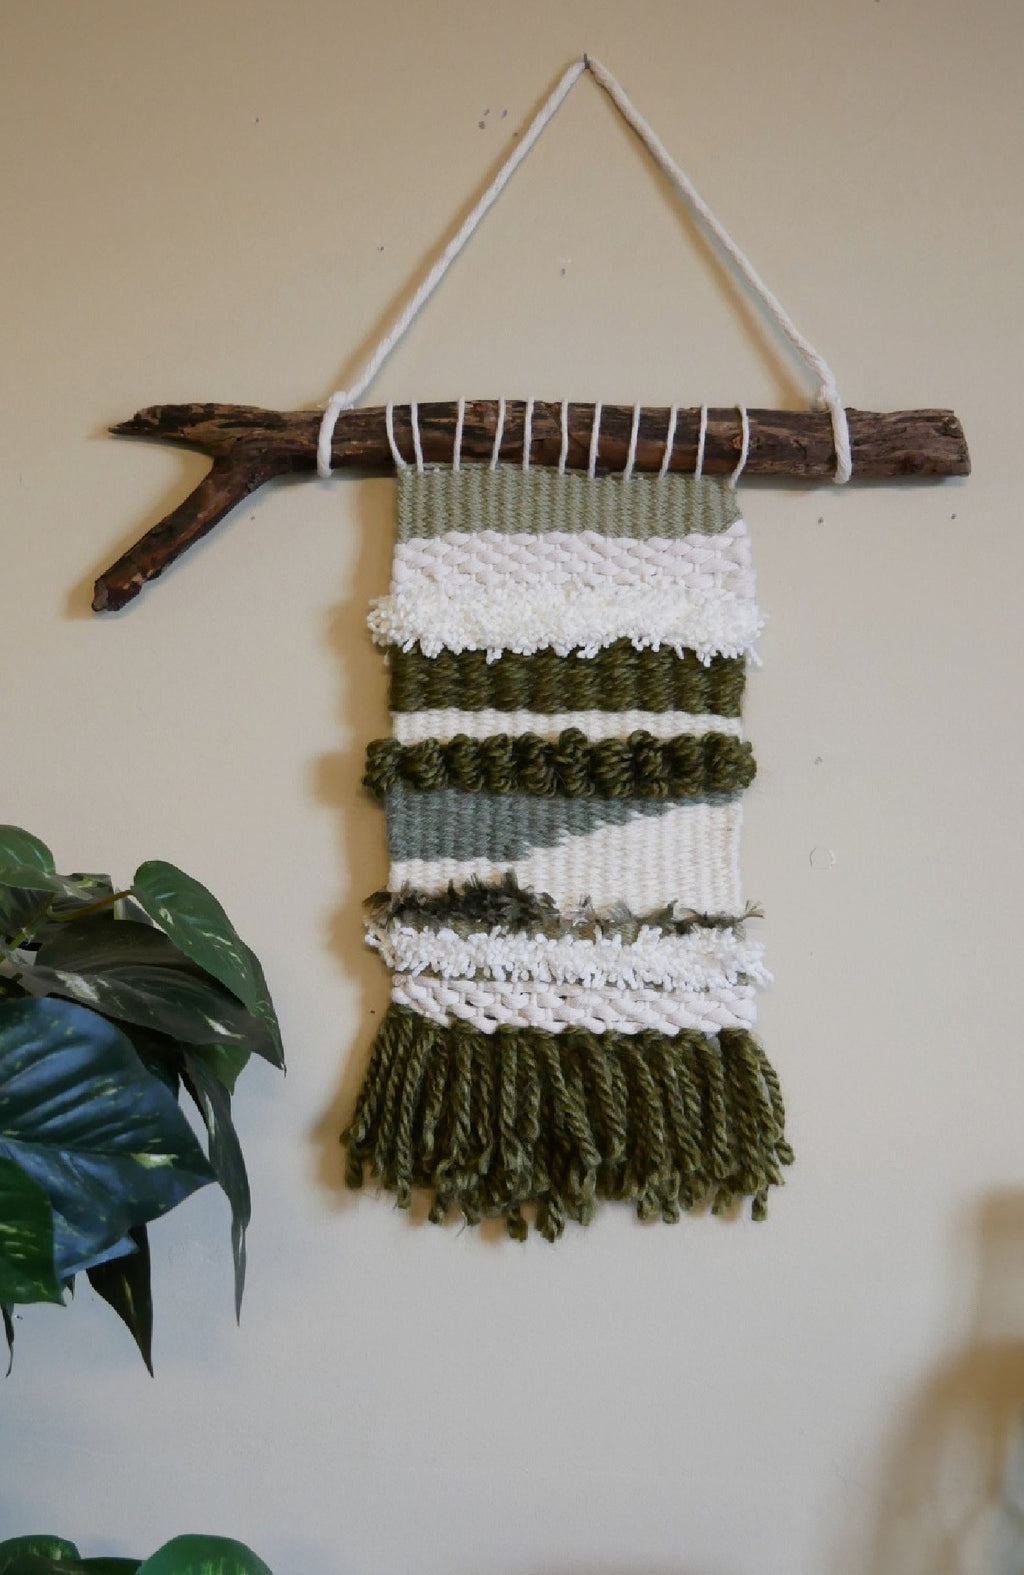 Small-Woven-Macrame-Nchanted-Gifts